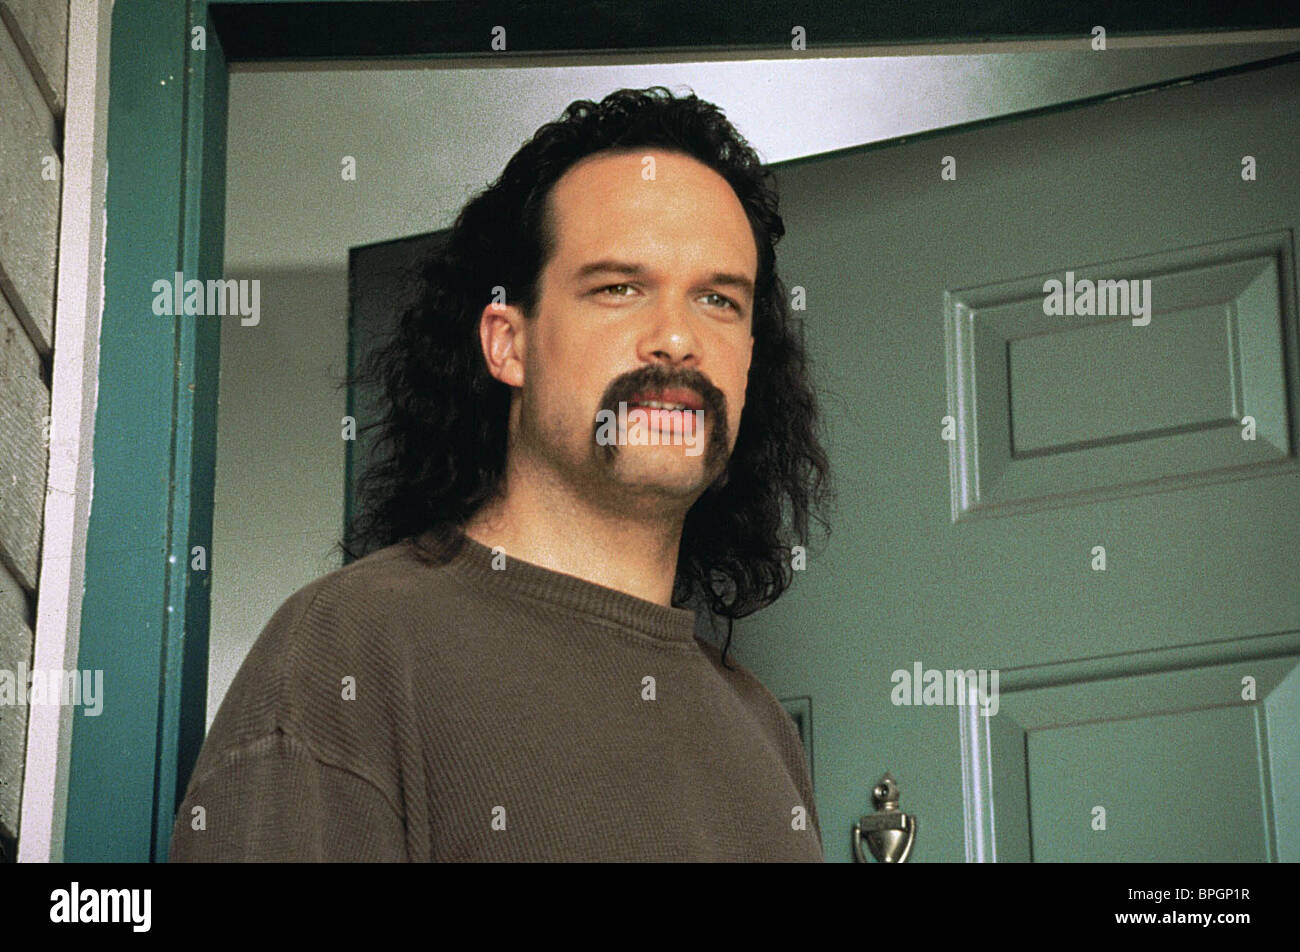 DIEDRICH BADER OFFICE SPACE (1...